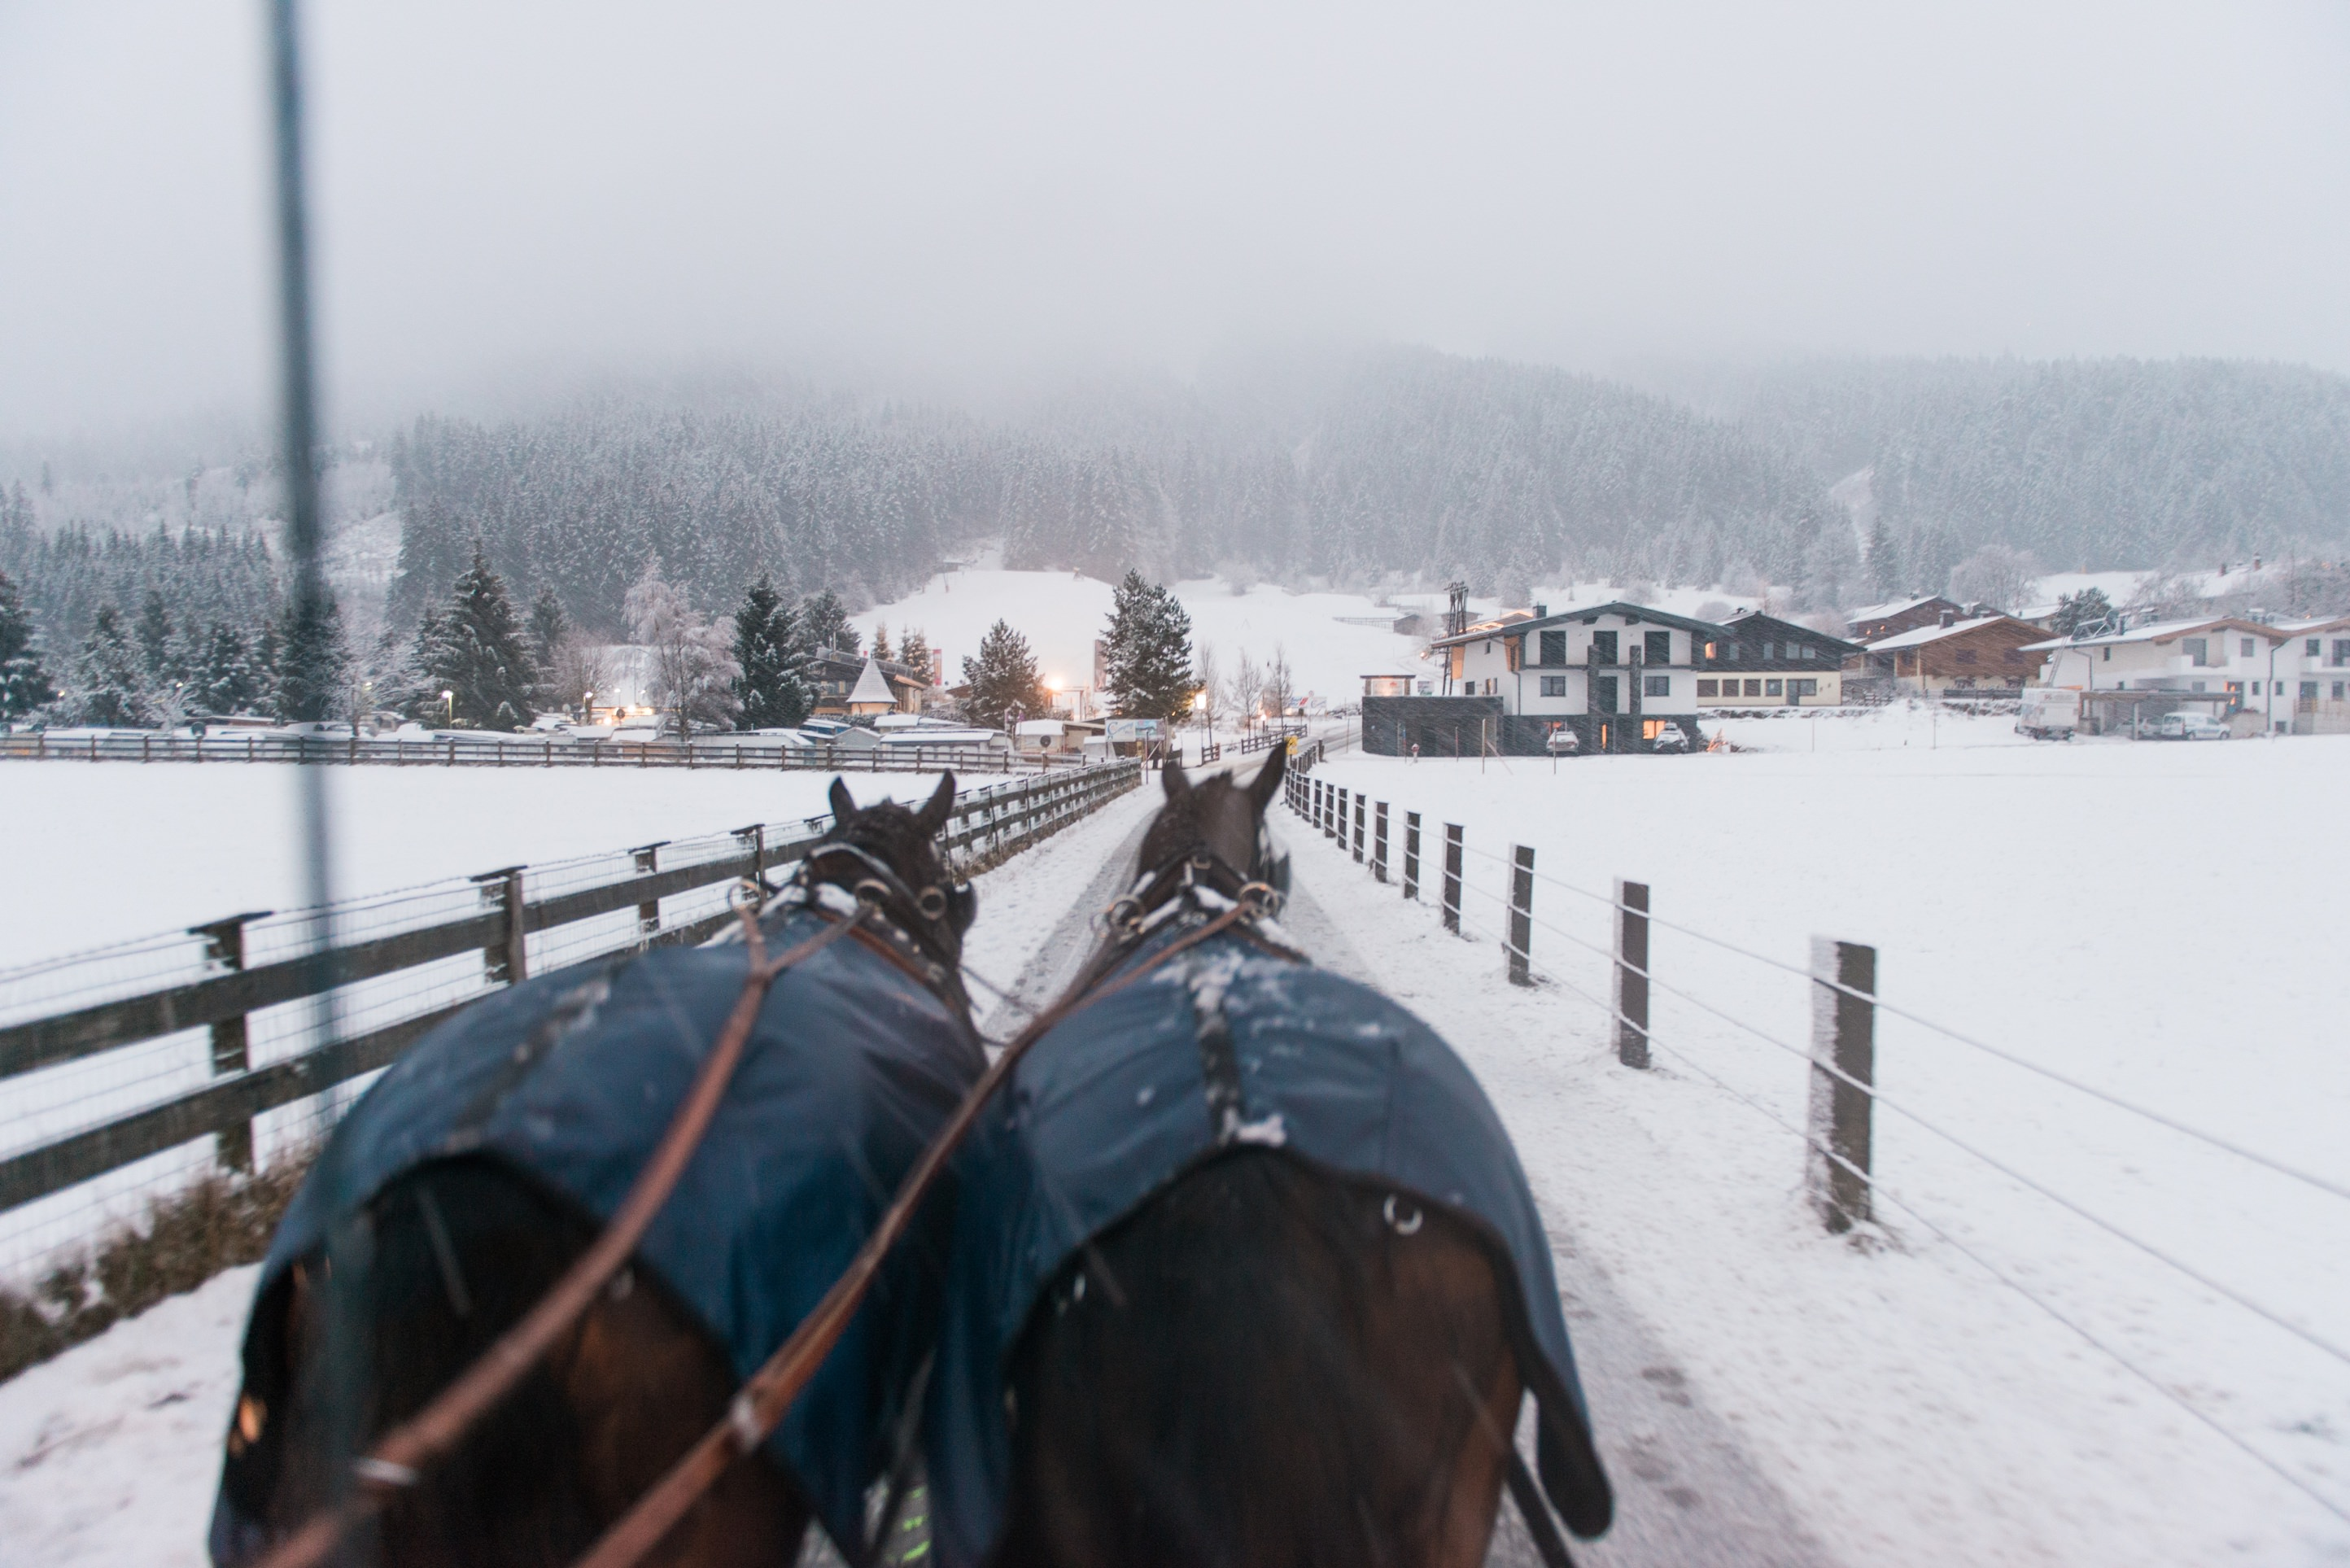 St. Moritz Trouwfotograaf - View of a village in Brixen from out of a horse drawn carriage